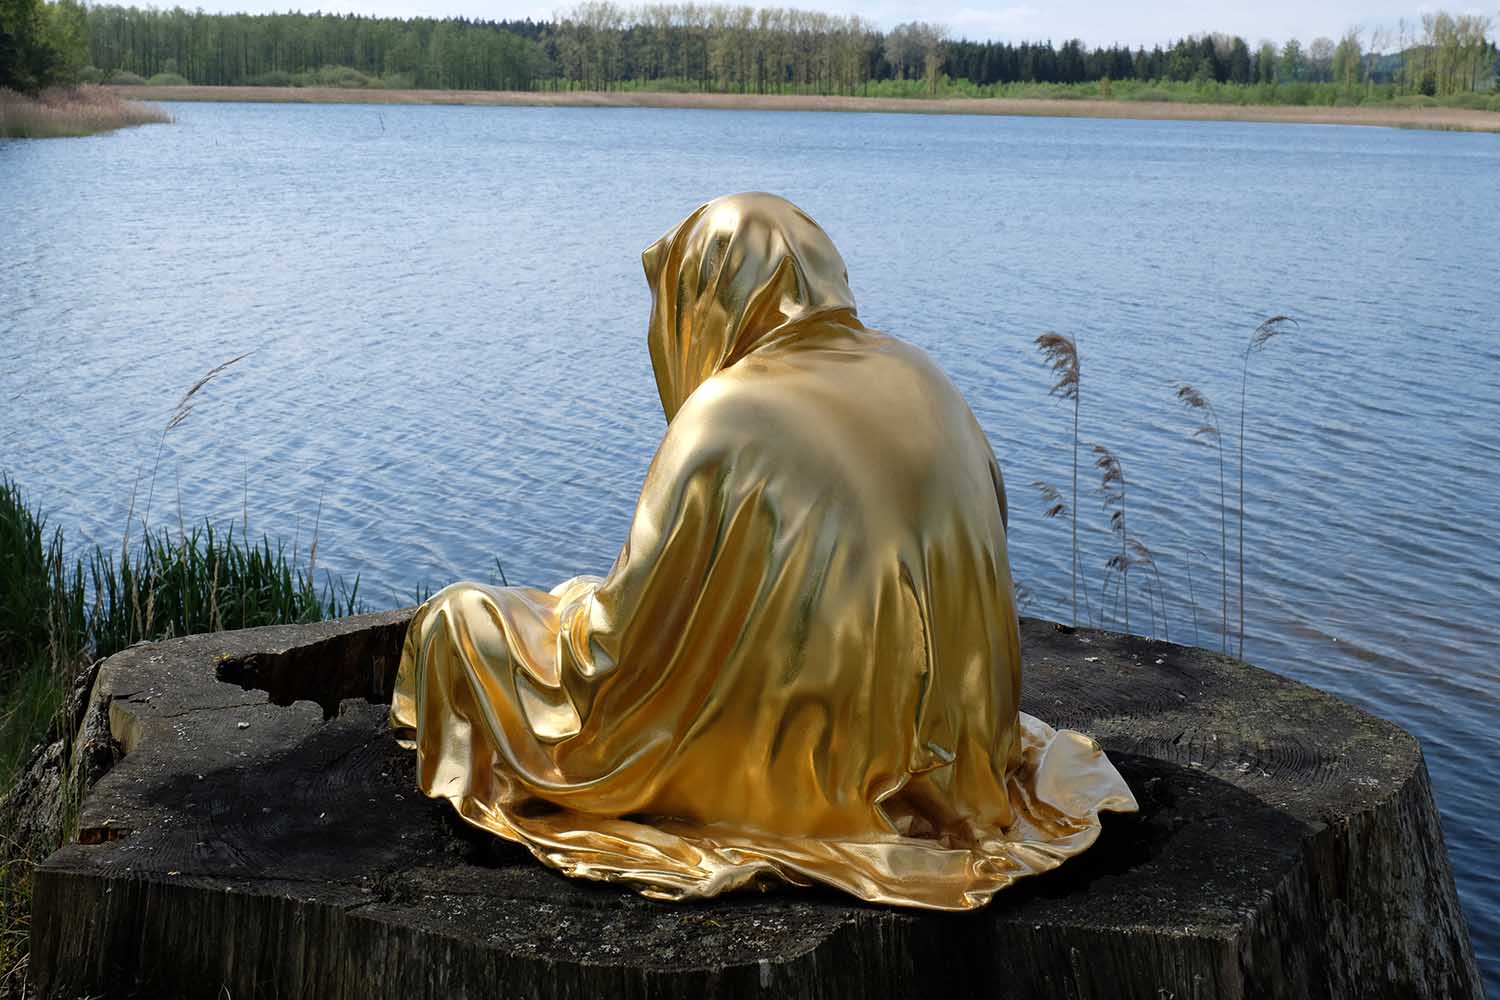 guardians of time by manfred kielnhofer kili contemporary art fine arts modern design artist sculpture statue form shape faceless gold silver bronze stone marble show 2116